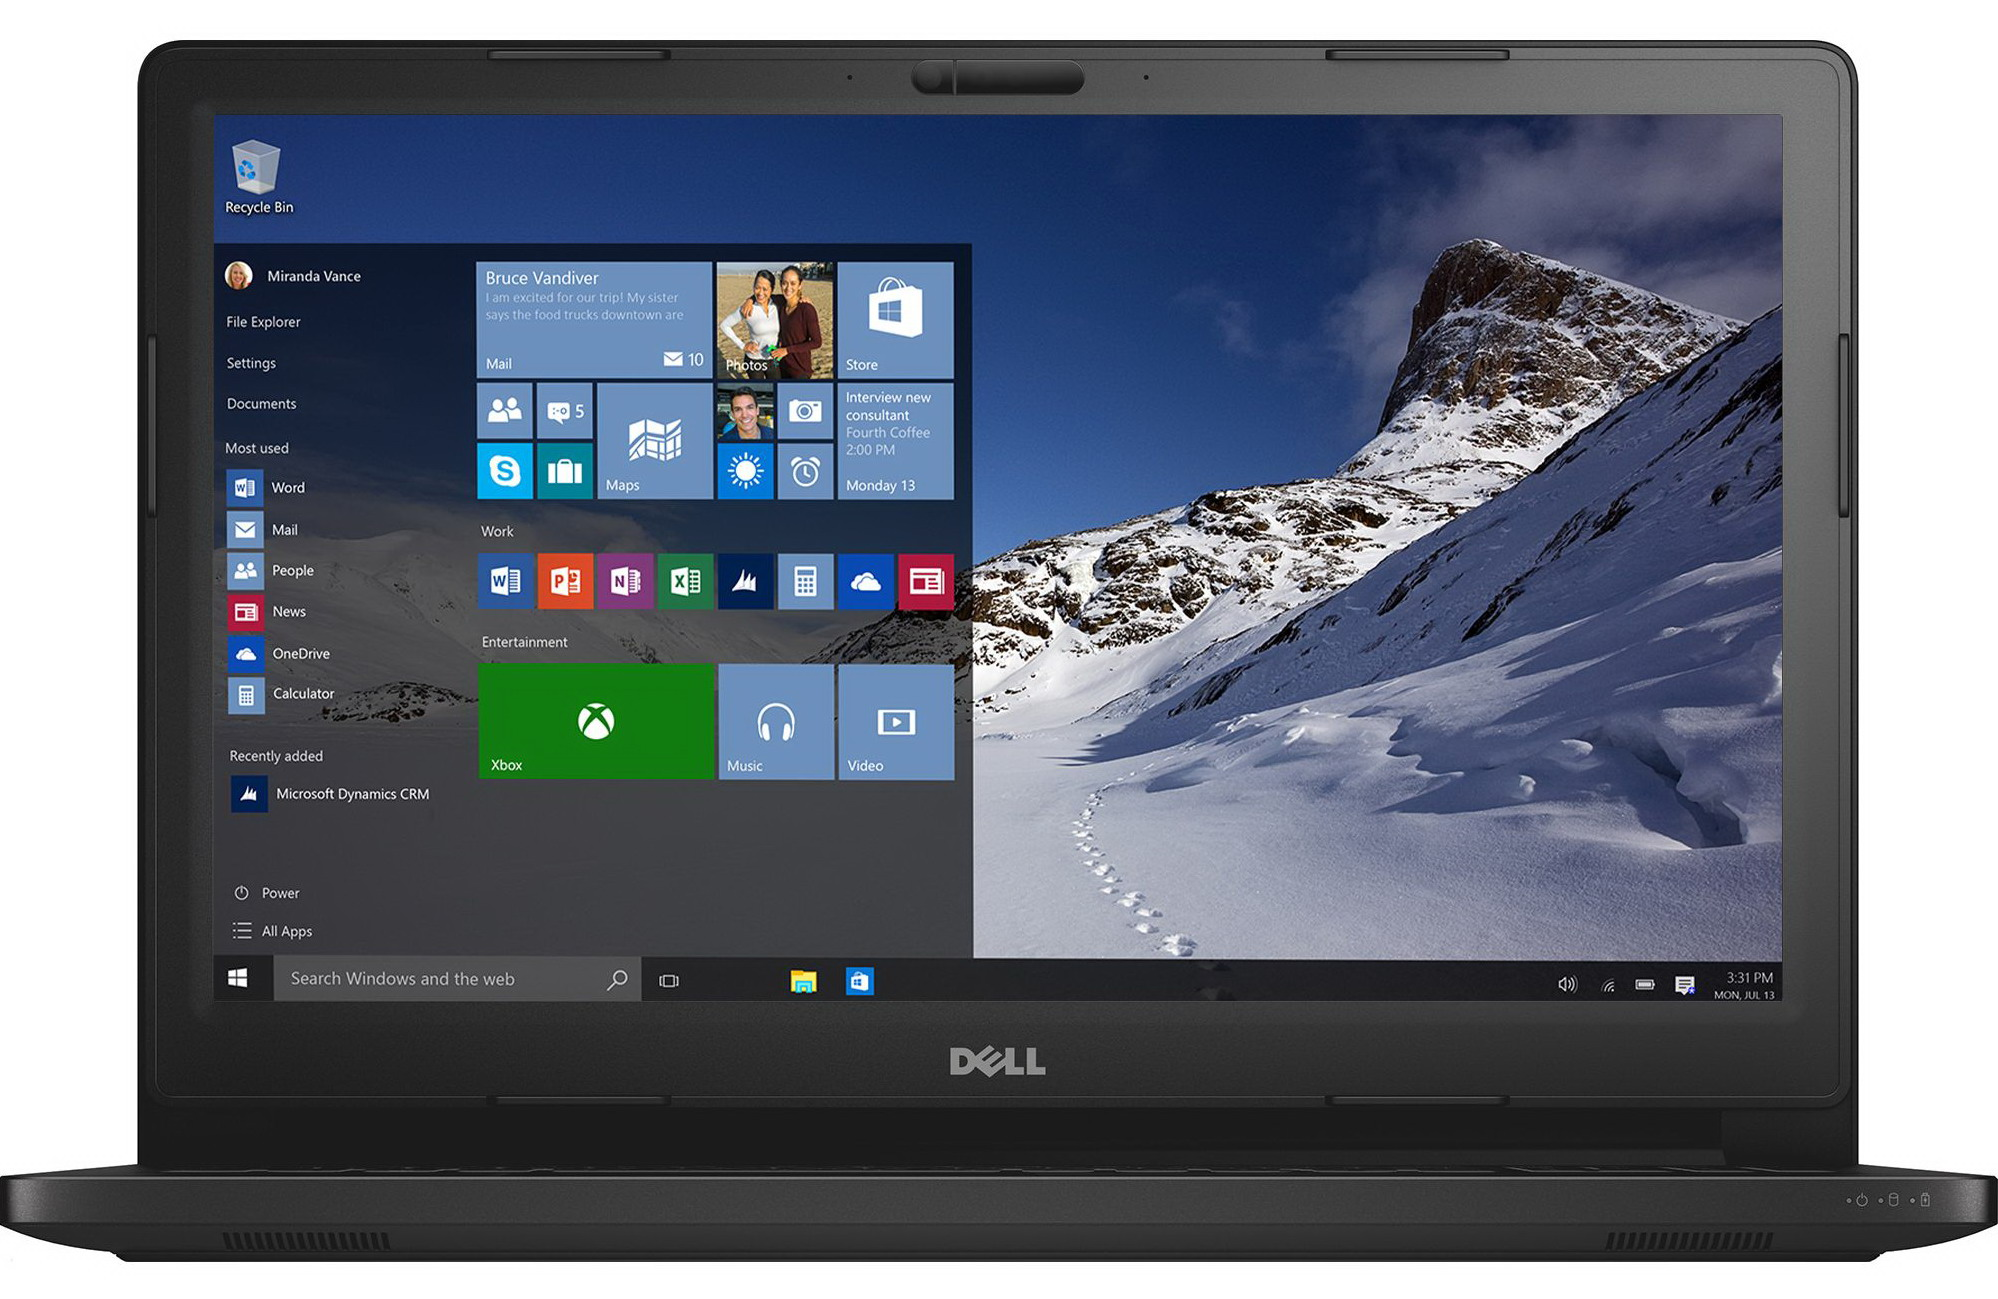 Dell Latitude 15 3000 Series (Model 3570) touch notebook computer, codename Loveland.